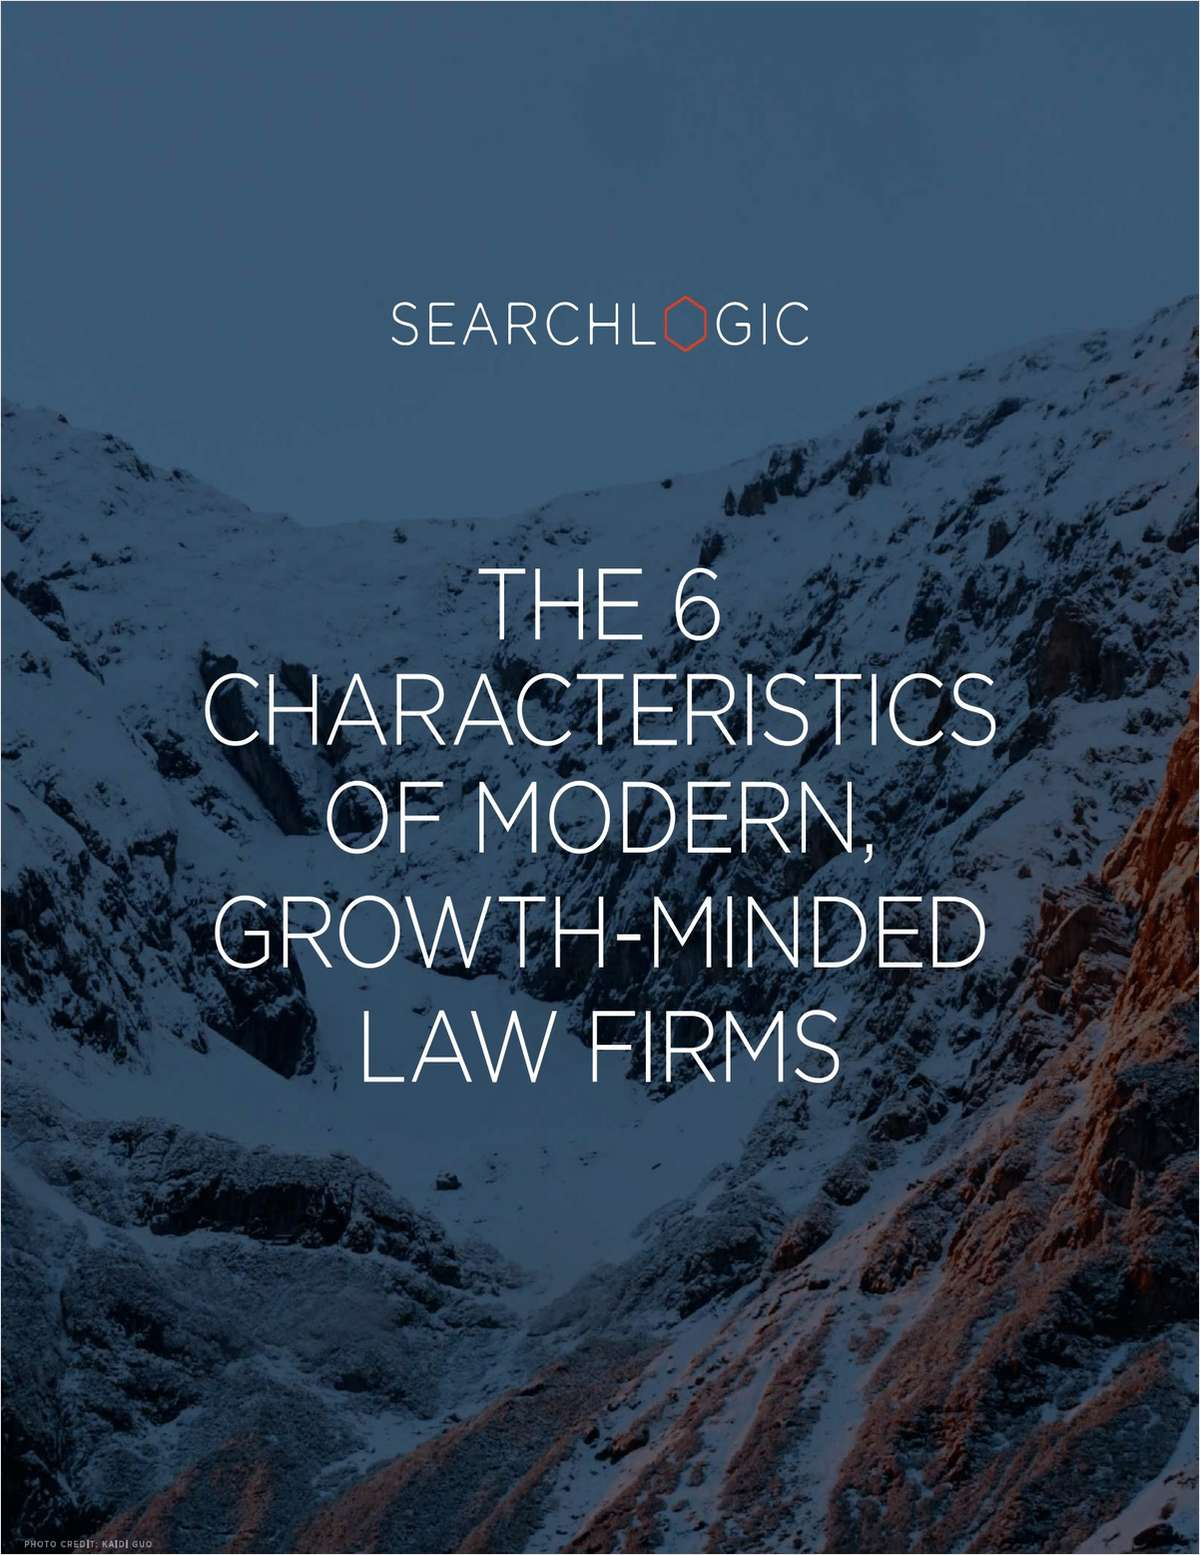 The 6 Characteristics of Modern Growth-Minded Law Firms